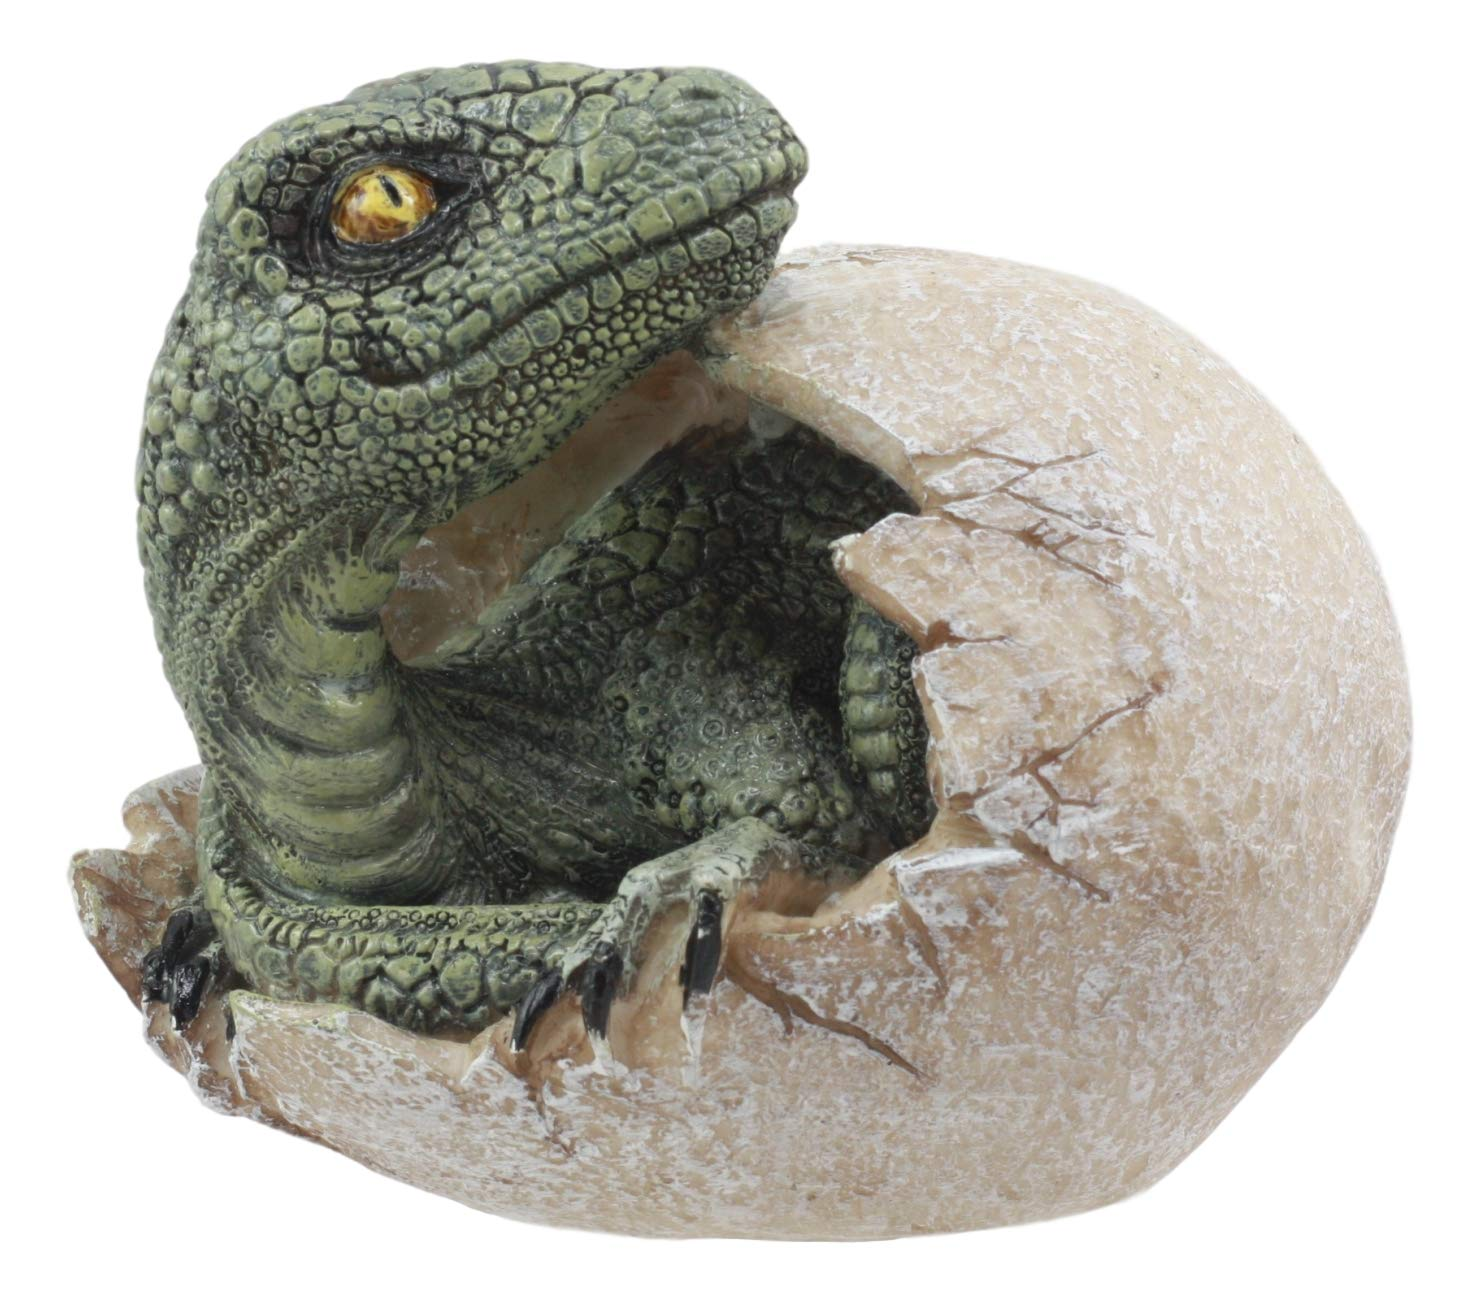 "Ebros Jurassic Era Predator Hatching Dinosaur Egg Figurine 4"" Tall Velociraptor in Egg Hatchling Statue Decor Sculpture As Fossil Themed Art in 3D Prehistoric Animal Collectible"